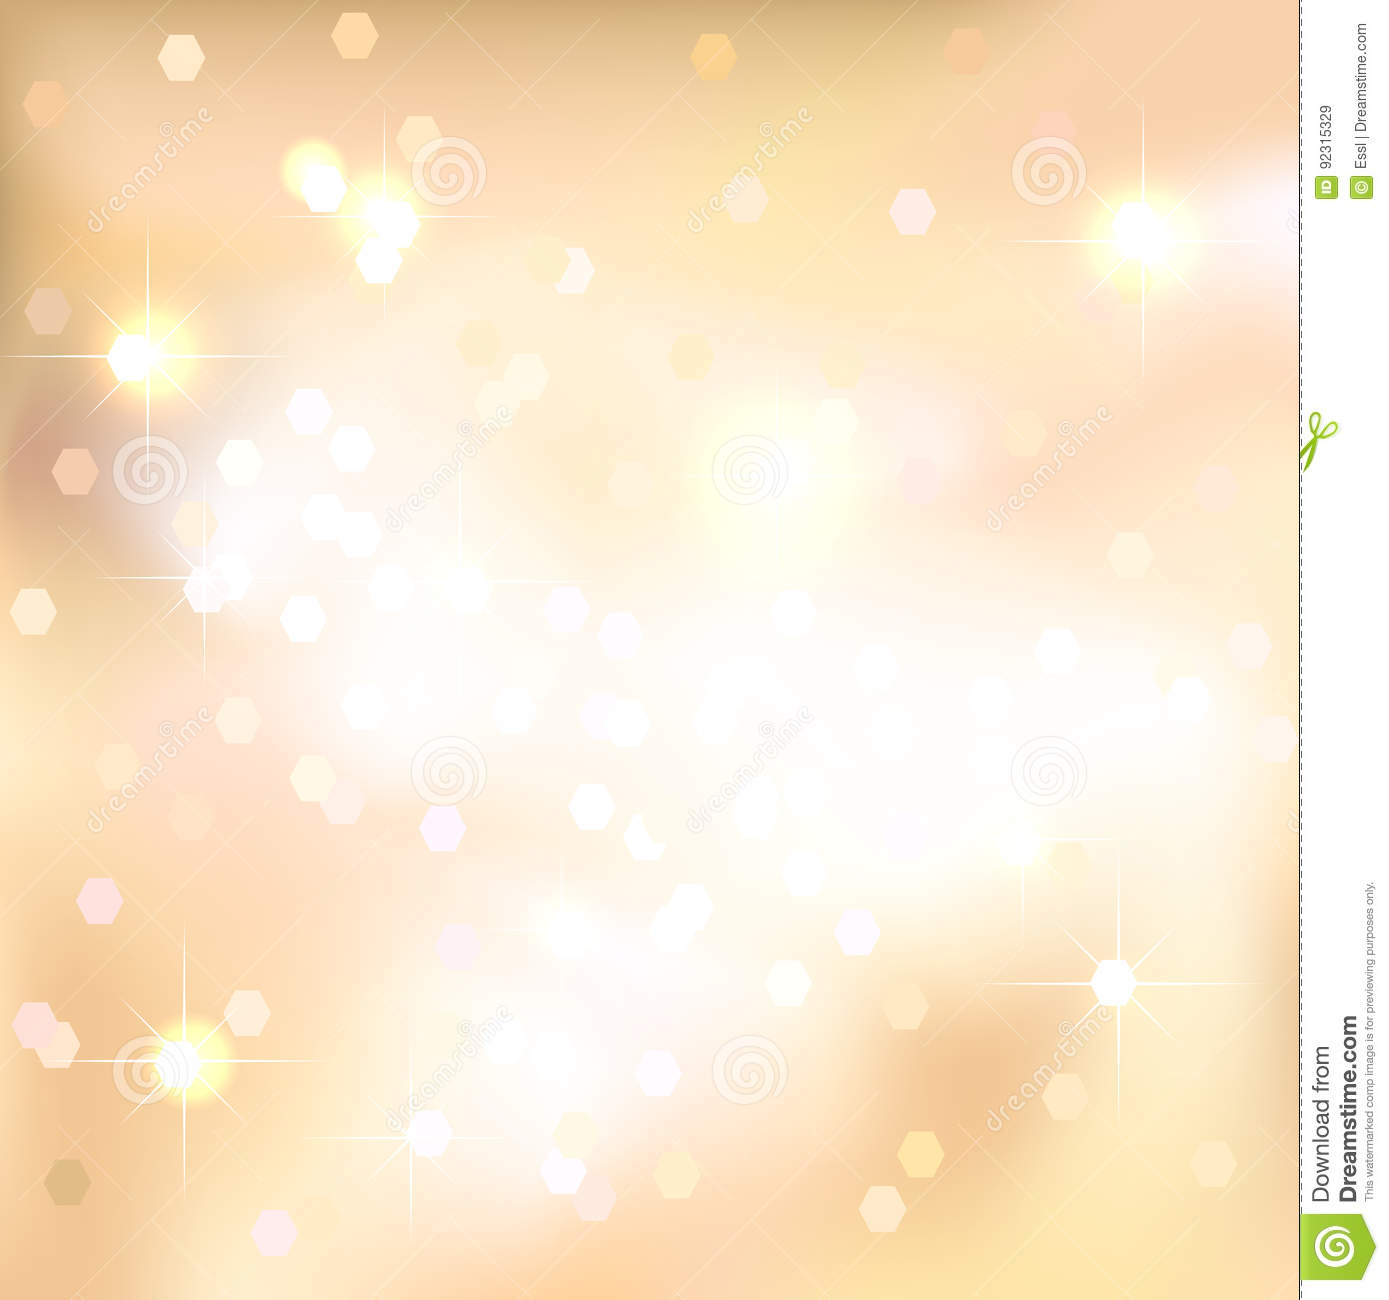 gold abstract background with light spots and stars magical new year christmas event style